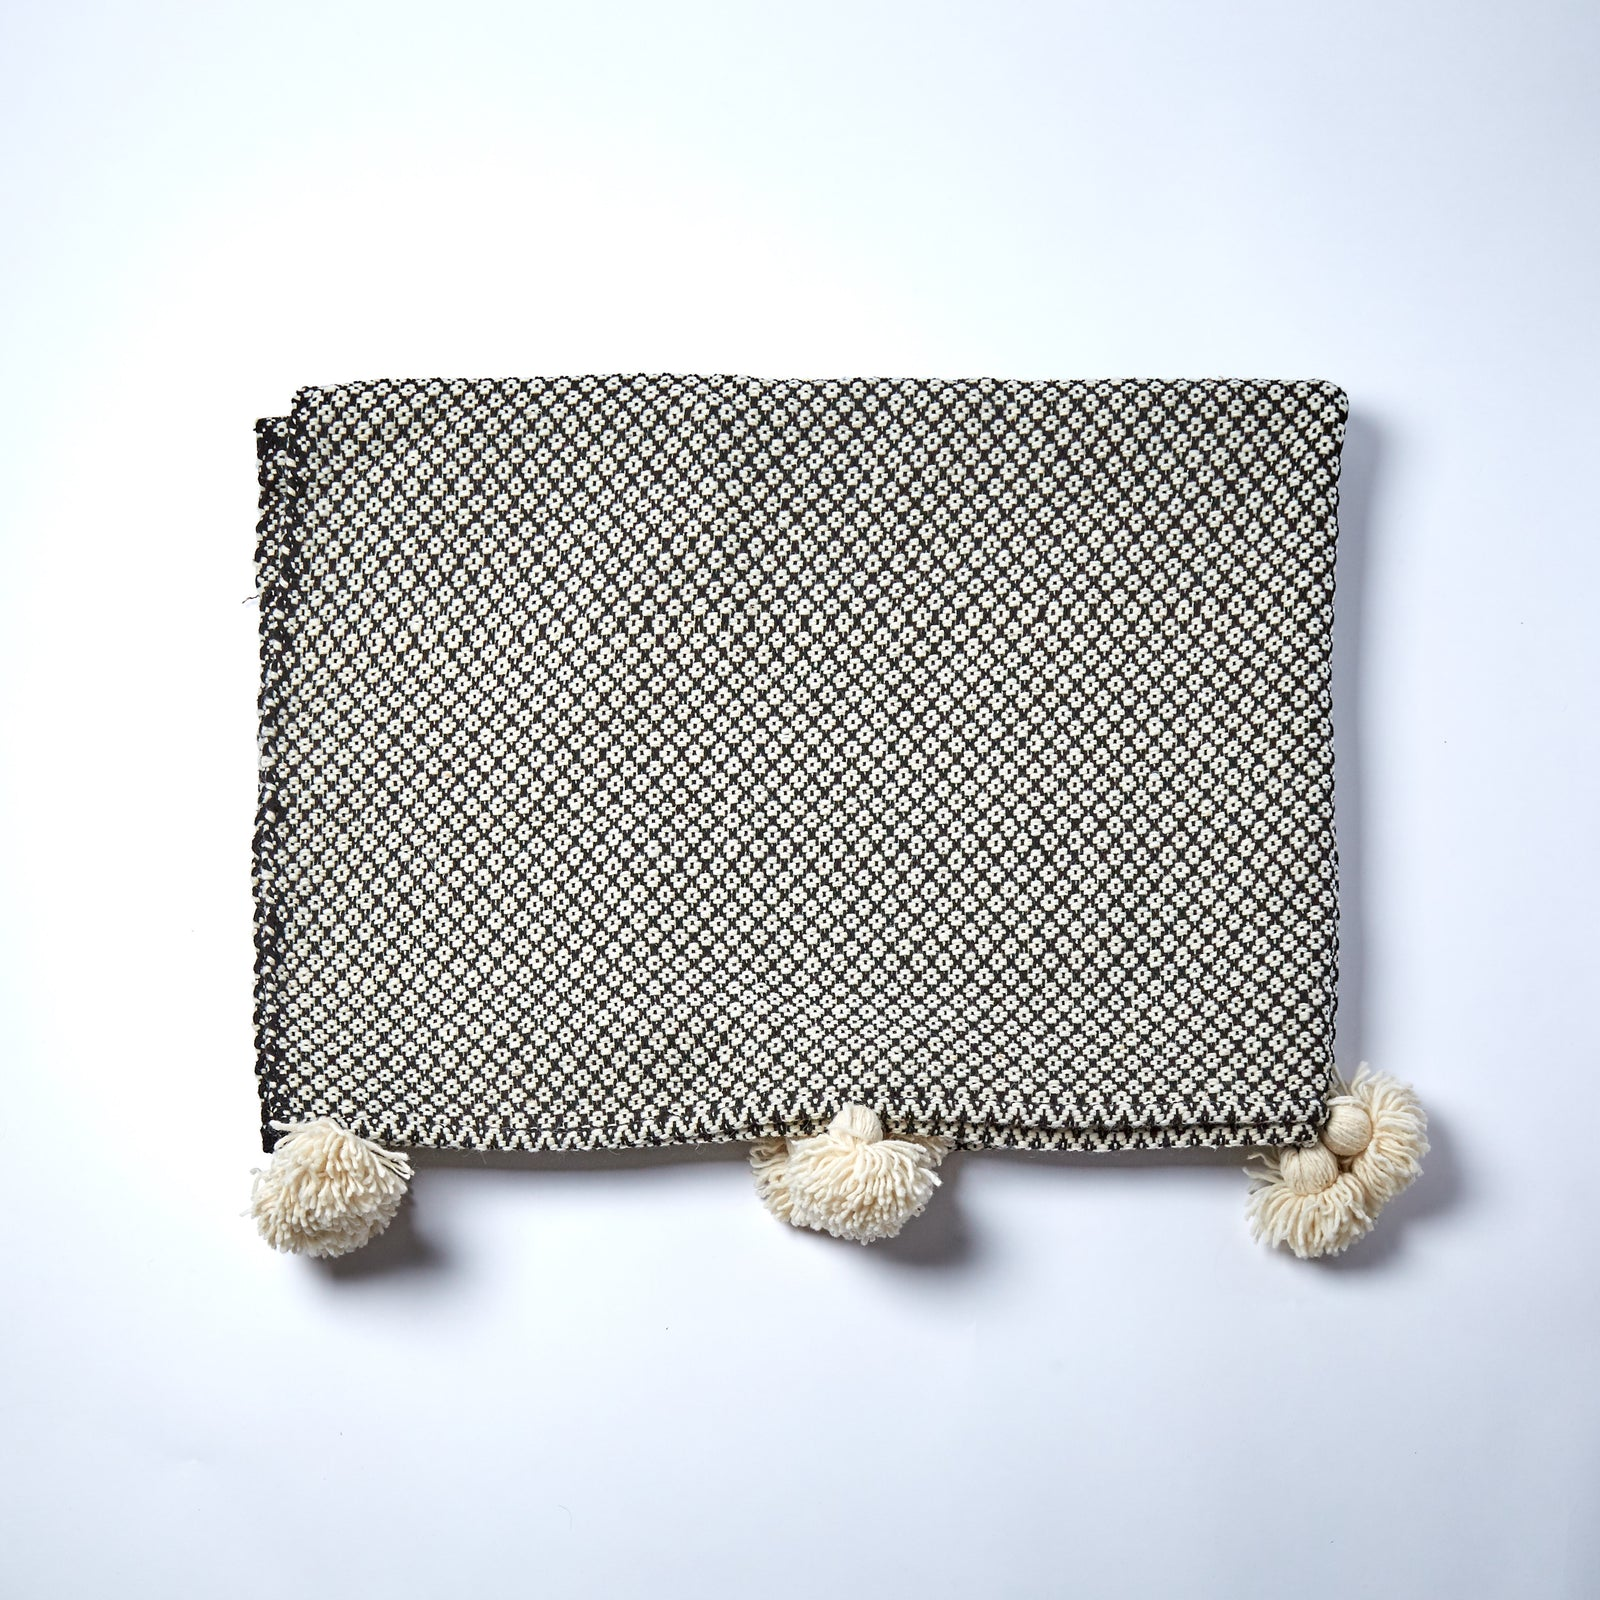 Thick and luxurious, this throw will have you leaping under the covers on a cold winter night.